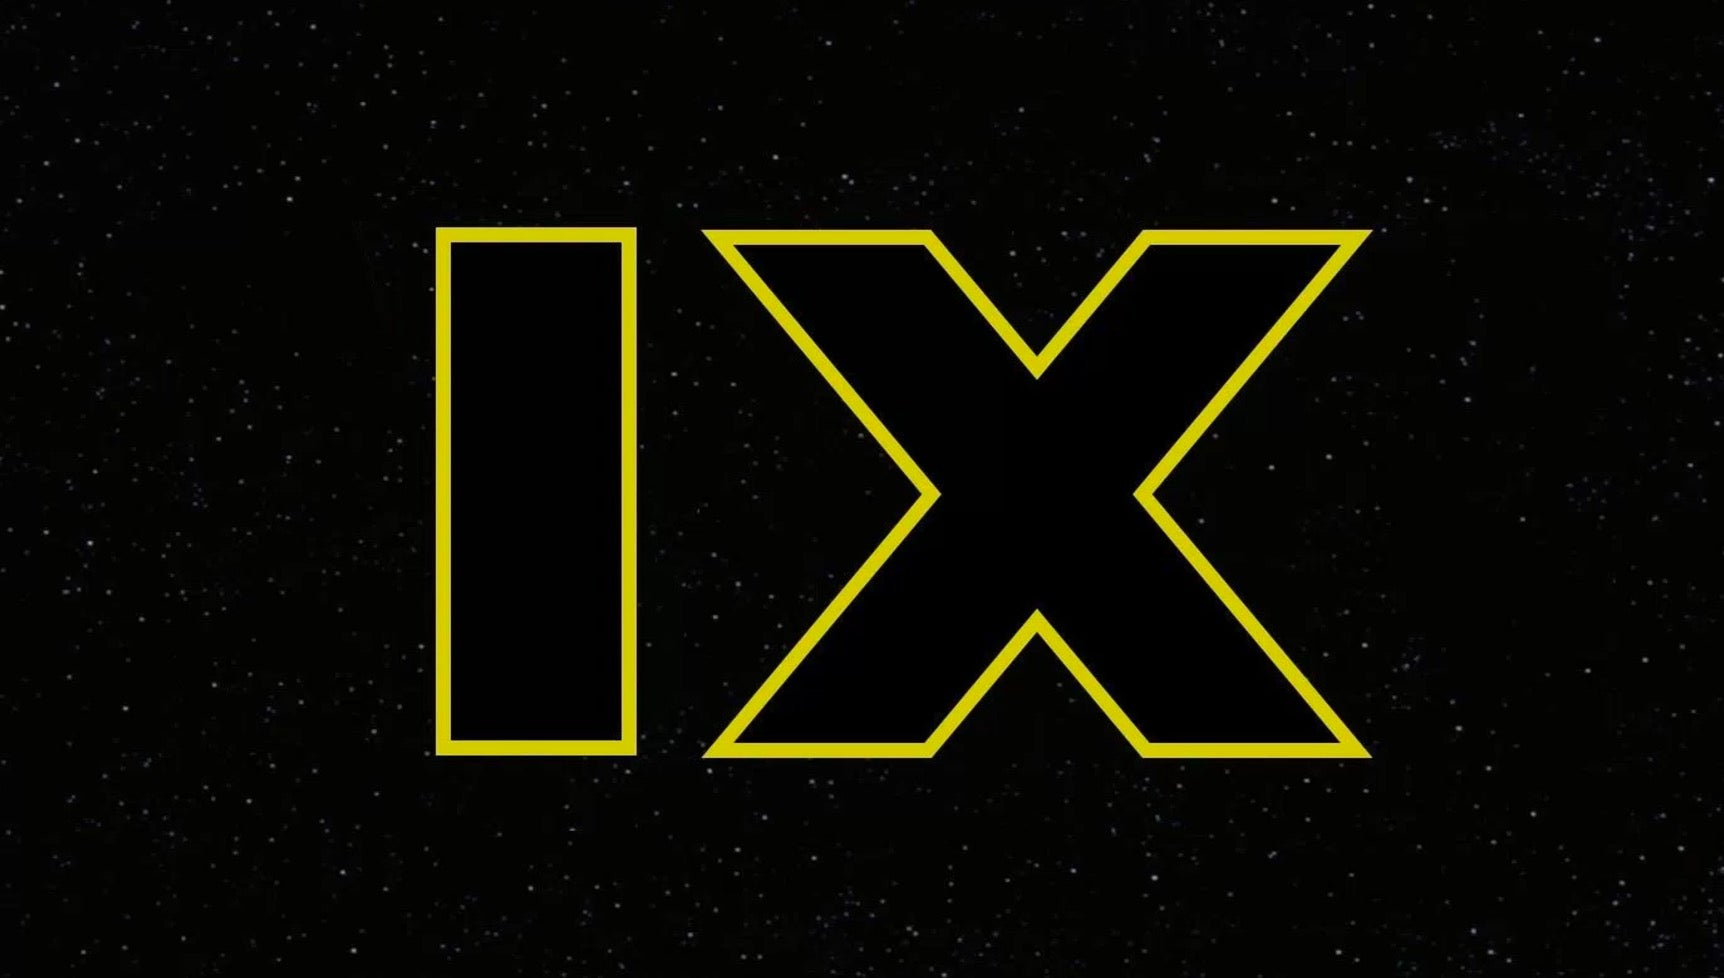 Colin Trevorrow Is No Longer Directing Star Wars Episode IX